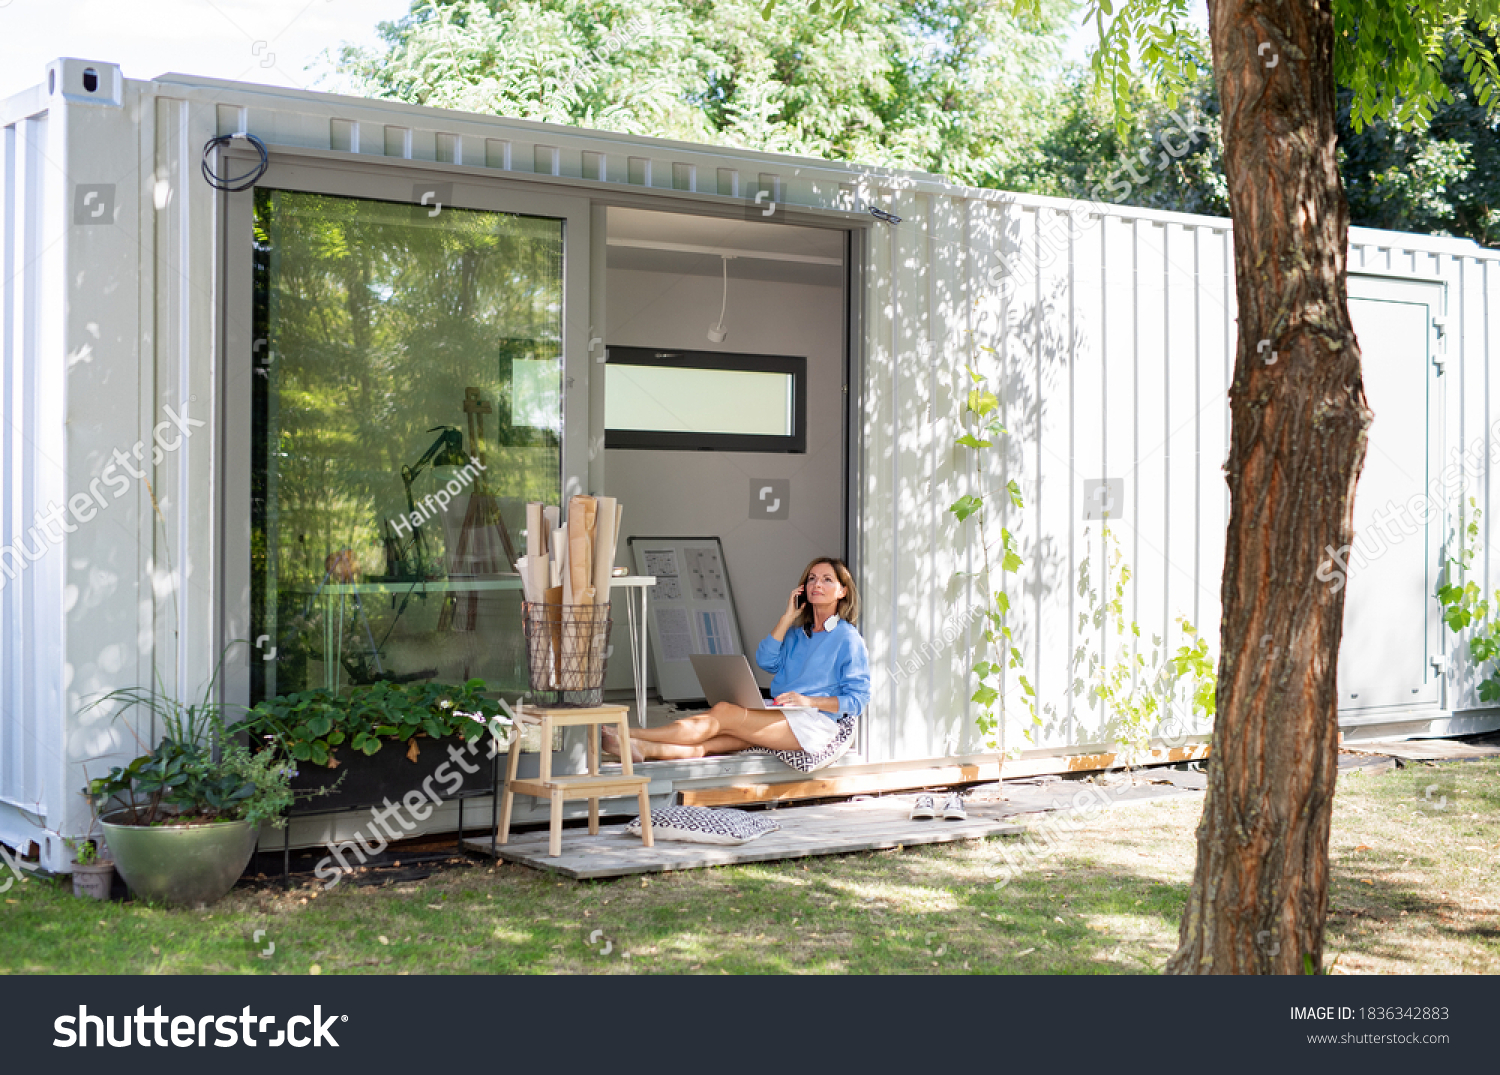 Mature woman working in home office in container house in backyard. #1836342883